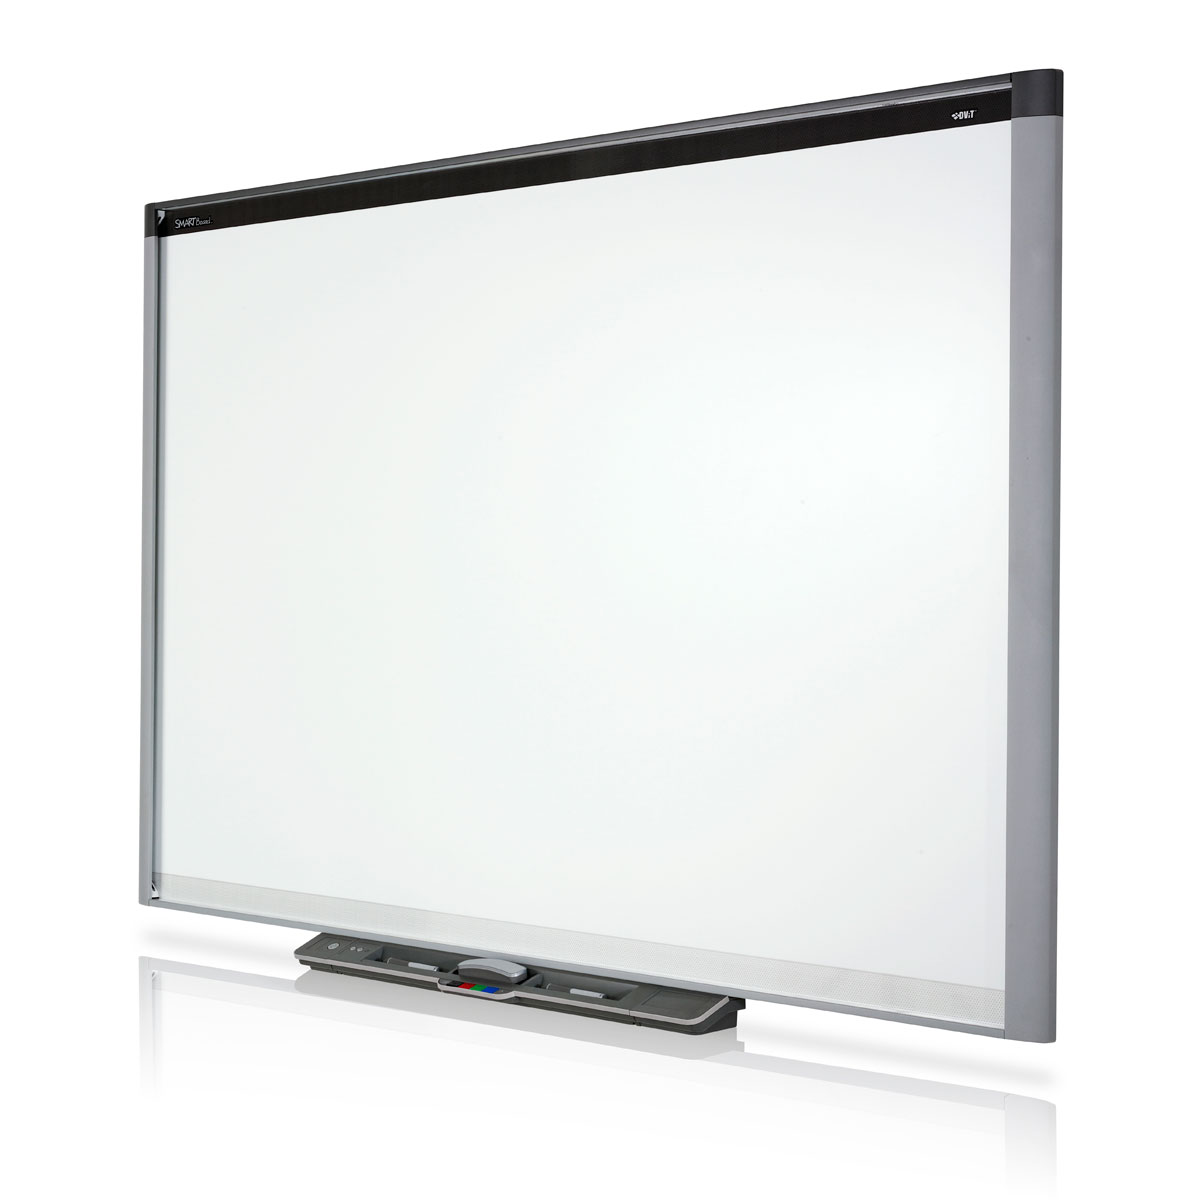 smart board 880 interactive whiteboard sb880 sbx880 st34535 buy at primary ict for primary. Black Bedroom Furniture Sets. Home Design Ideas